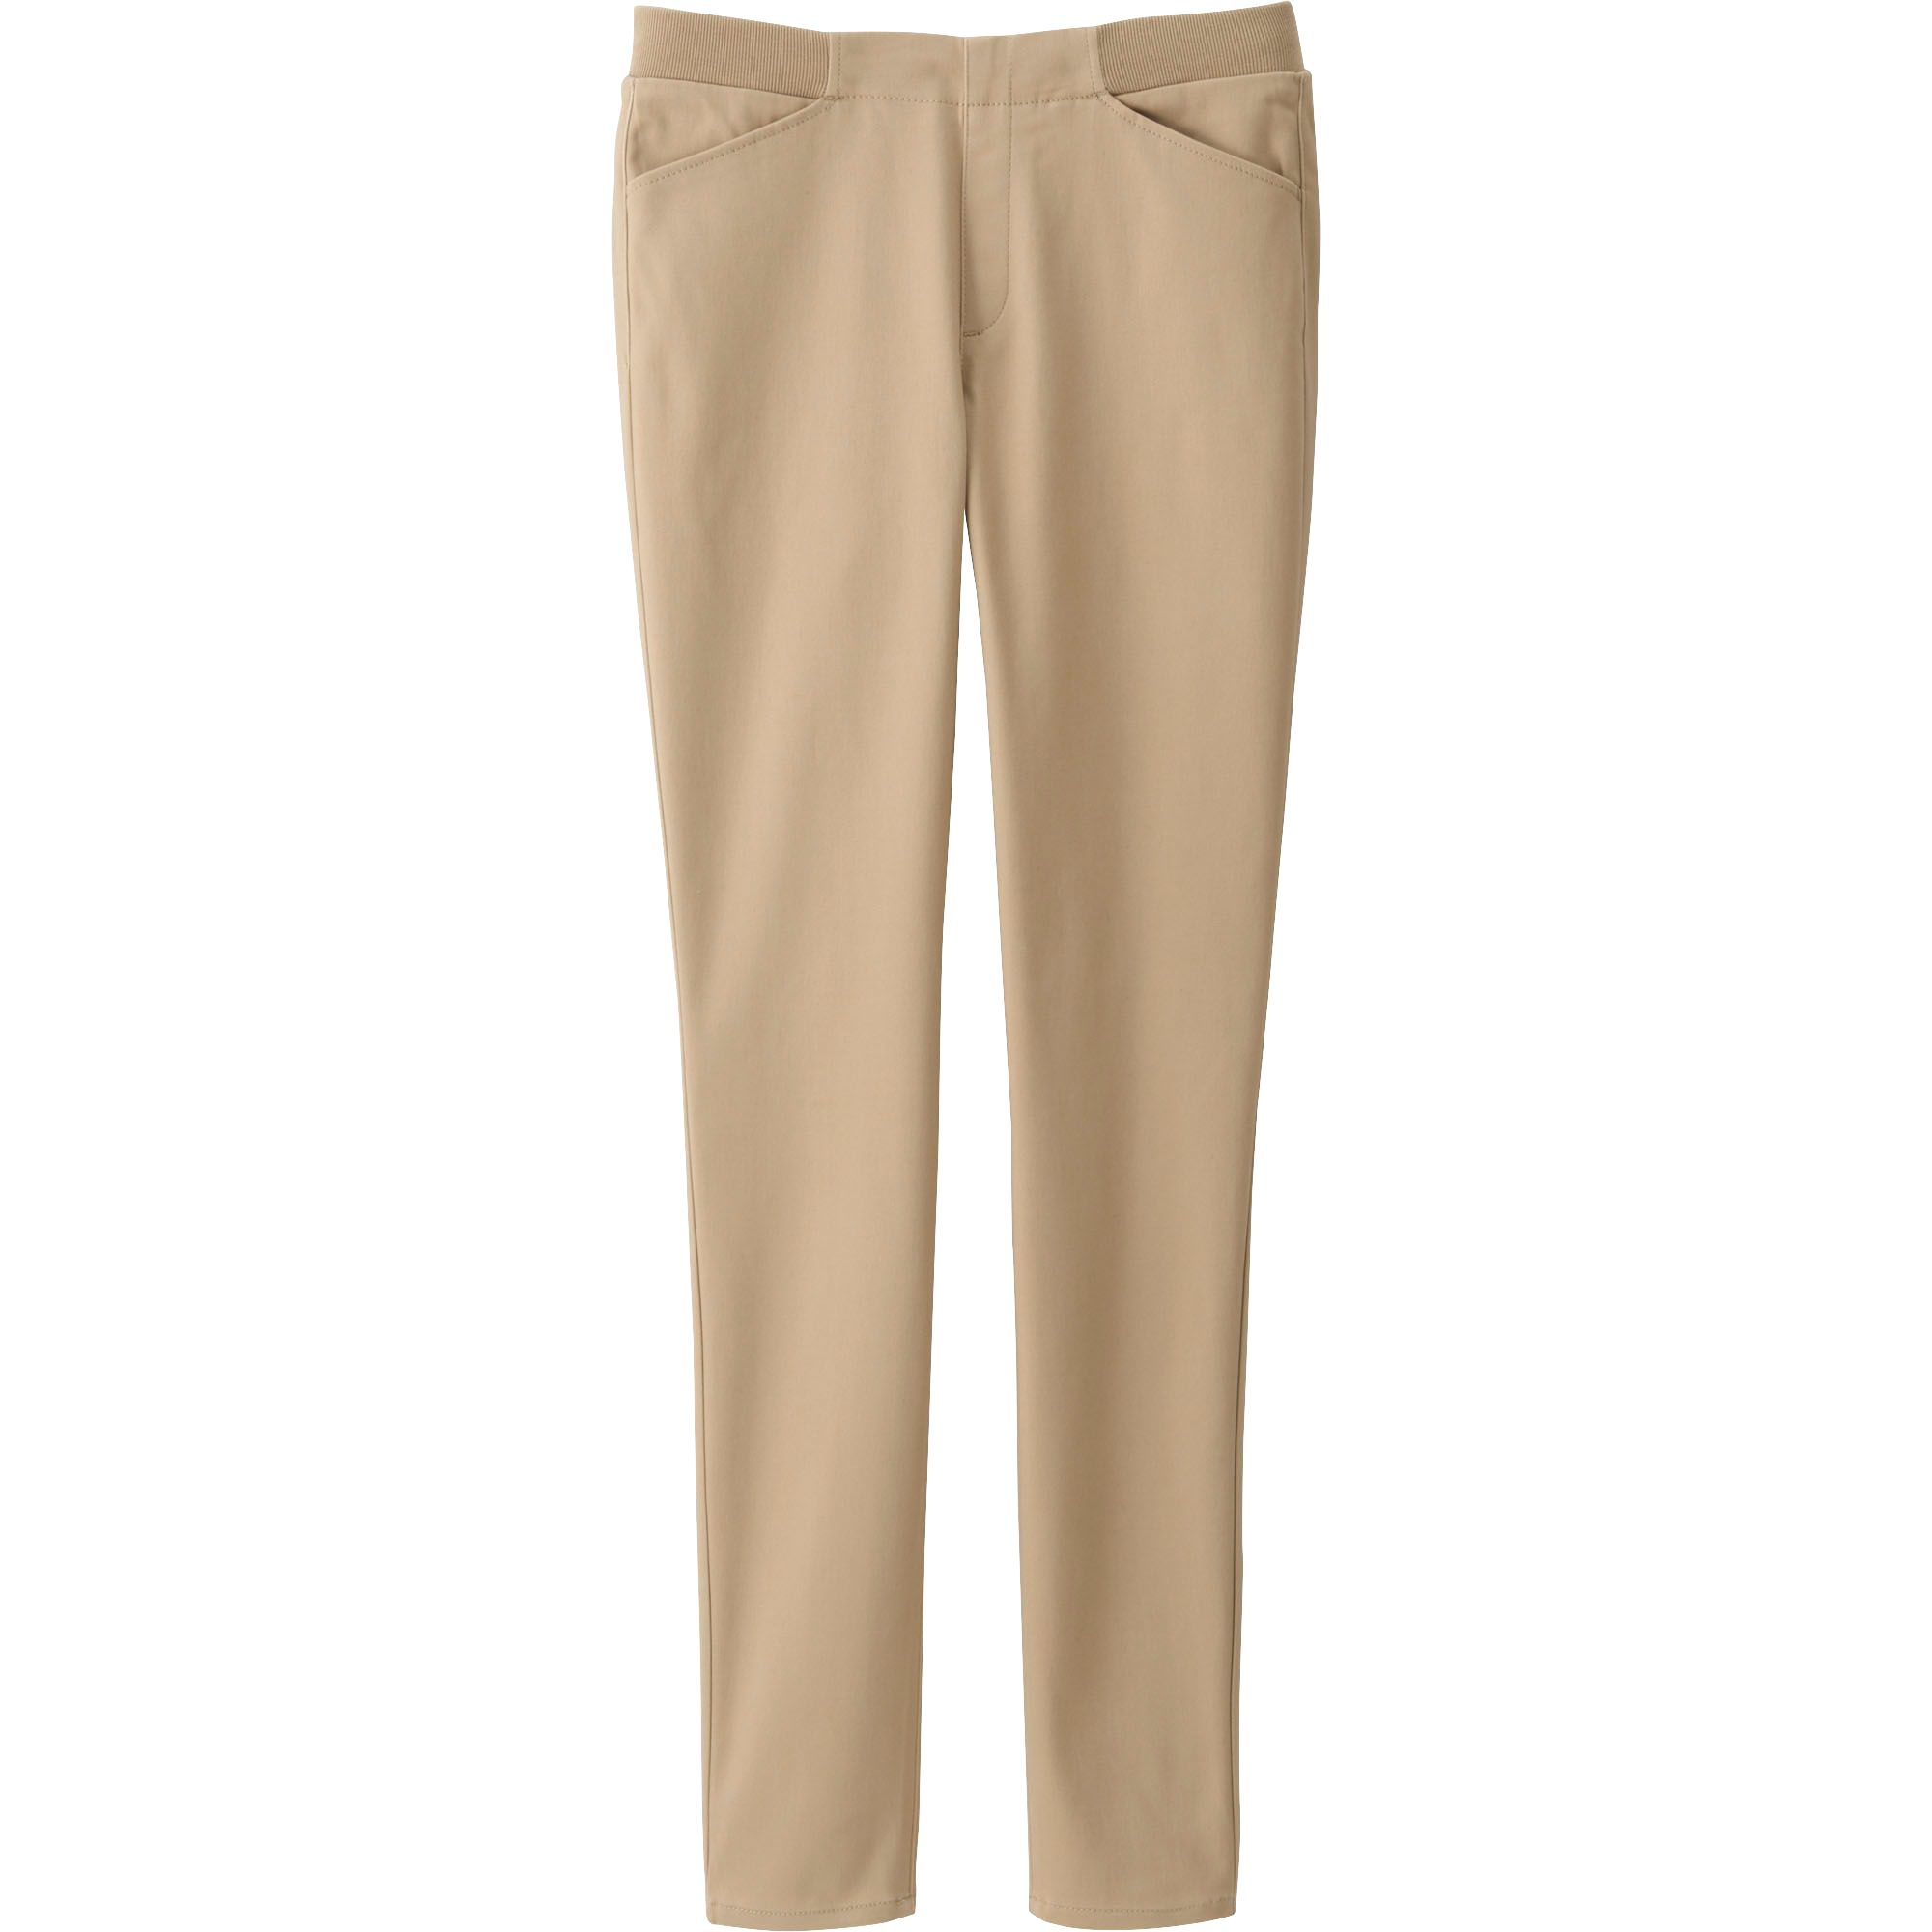 Find and save ideas about Beige pants outfit on Pinterest. | See more ideas about Beige pants, Black blazer outfit casual and Womens khaki pants.